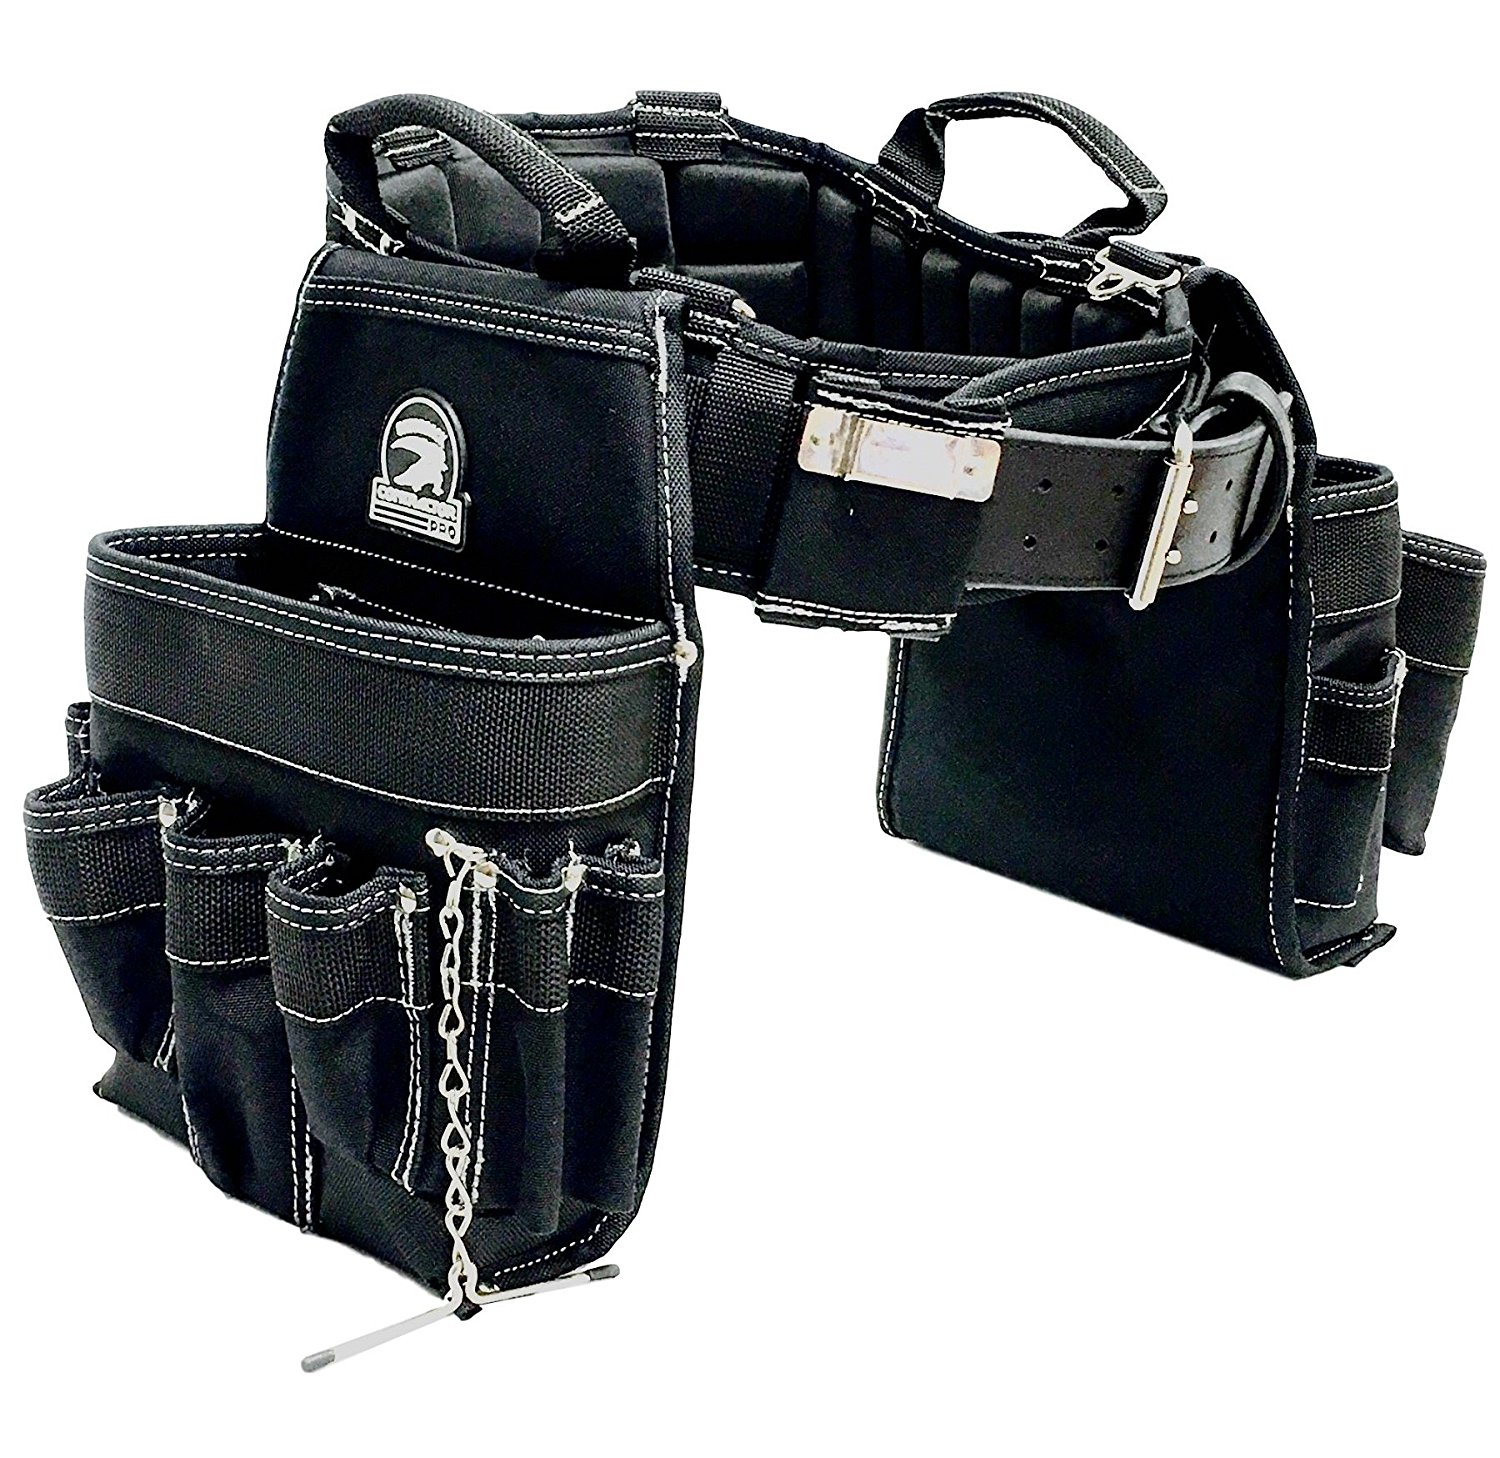 TradeGear Electrician's Tool Belt & Bag Combo - Partnered with Gatorback Contractor Pro– Available in 5 Sizes